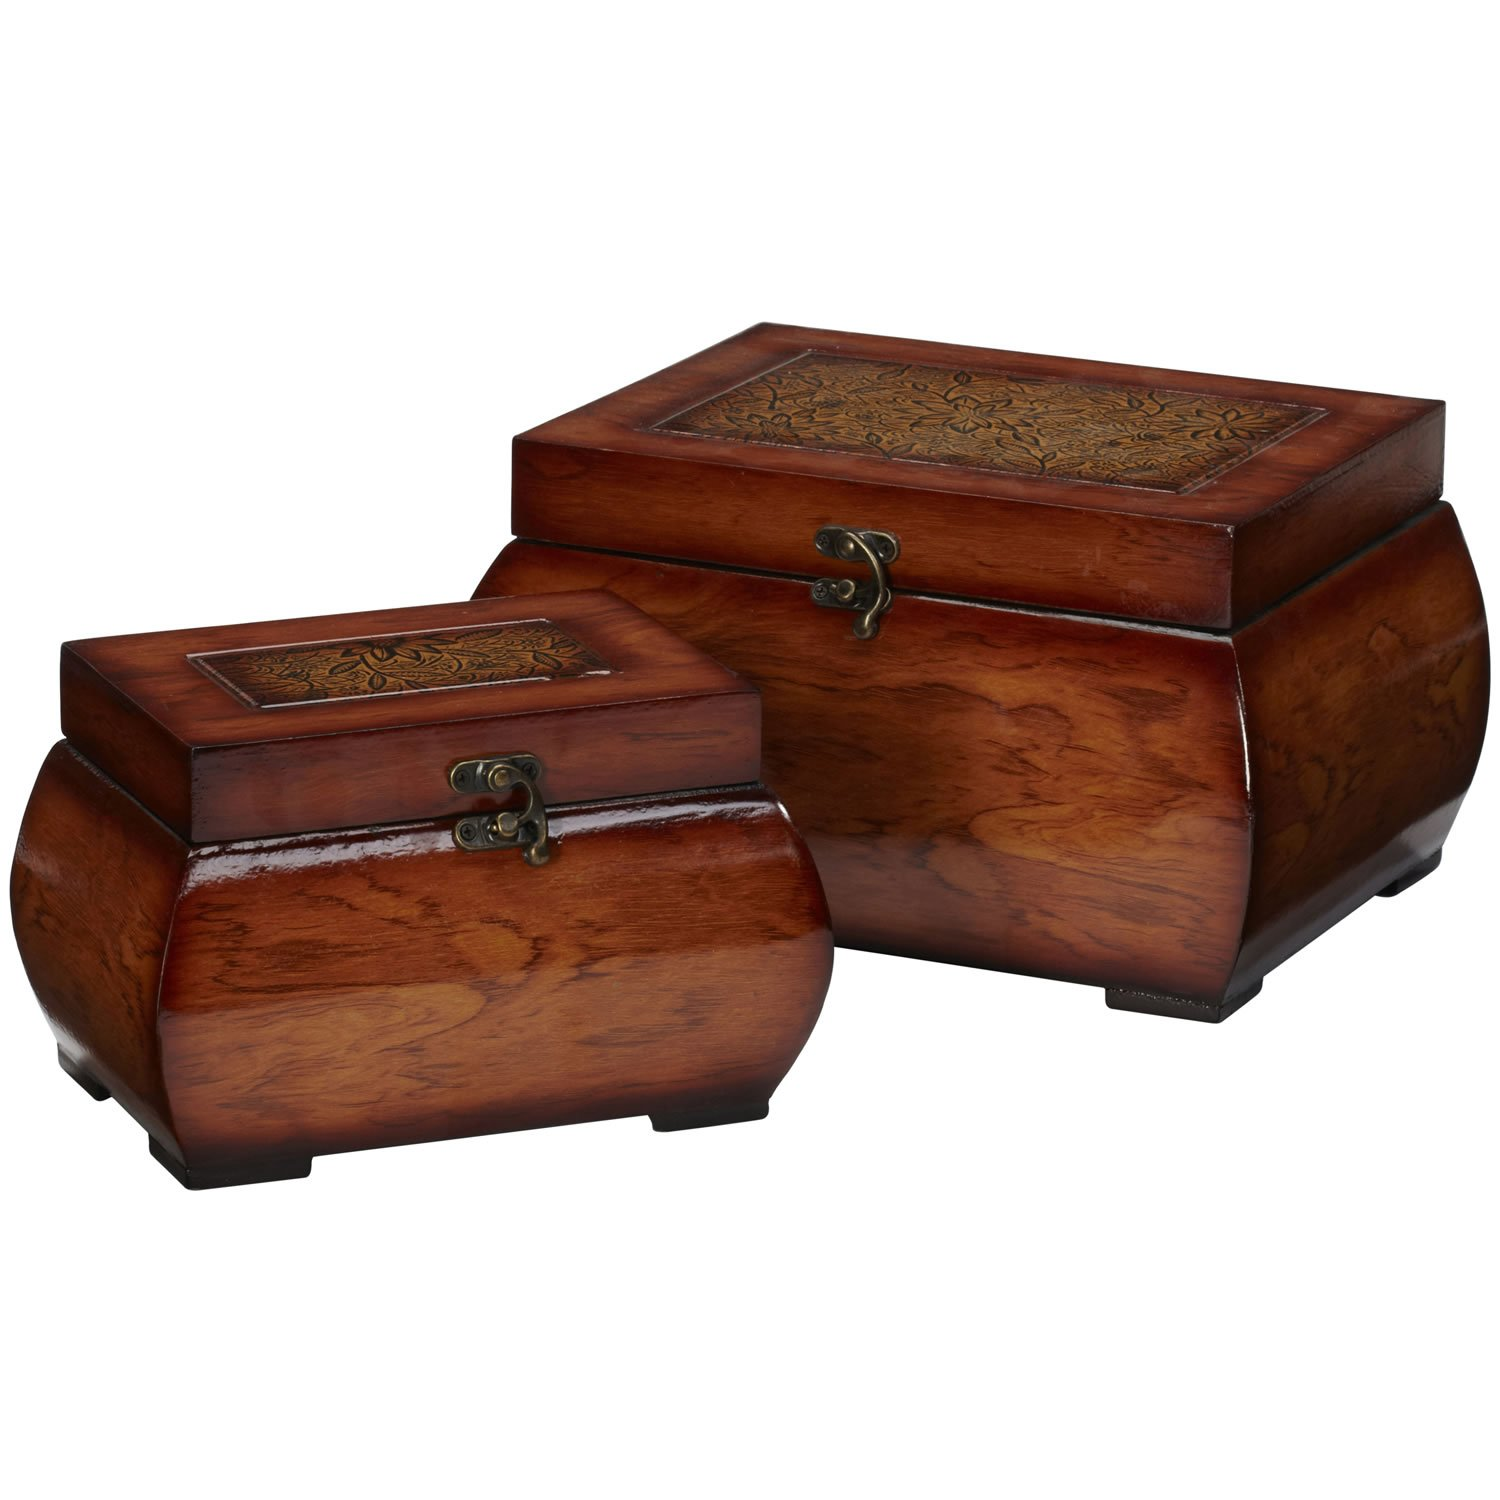 New Decorative Lacquered Wood Chests (Set of 2) NA